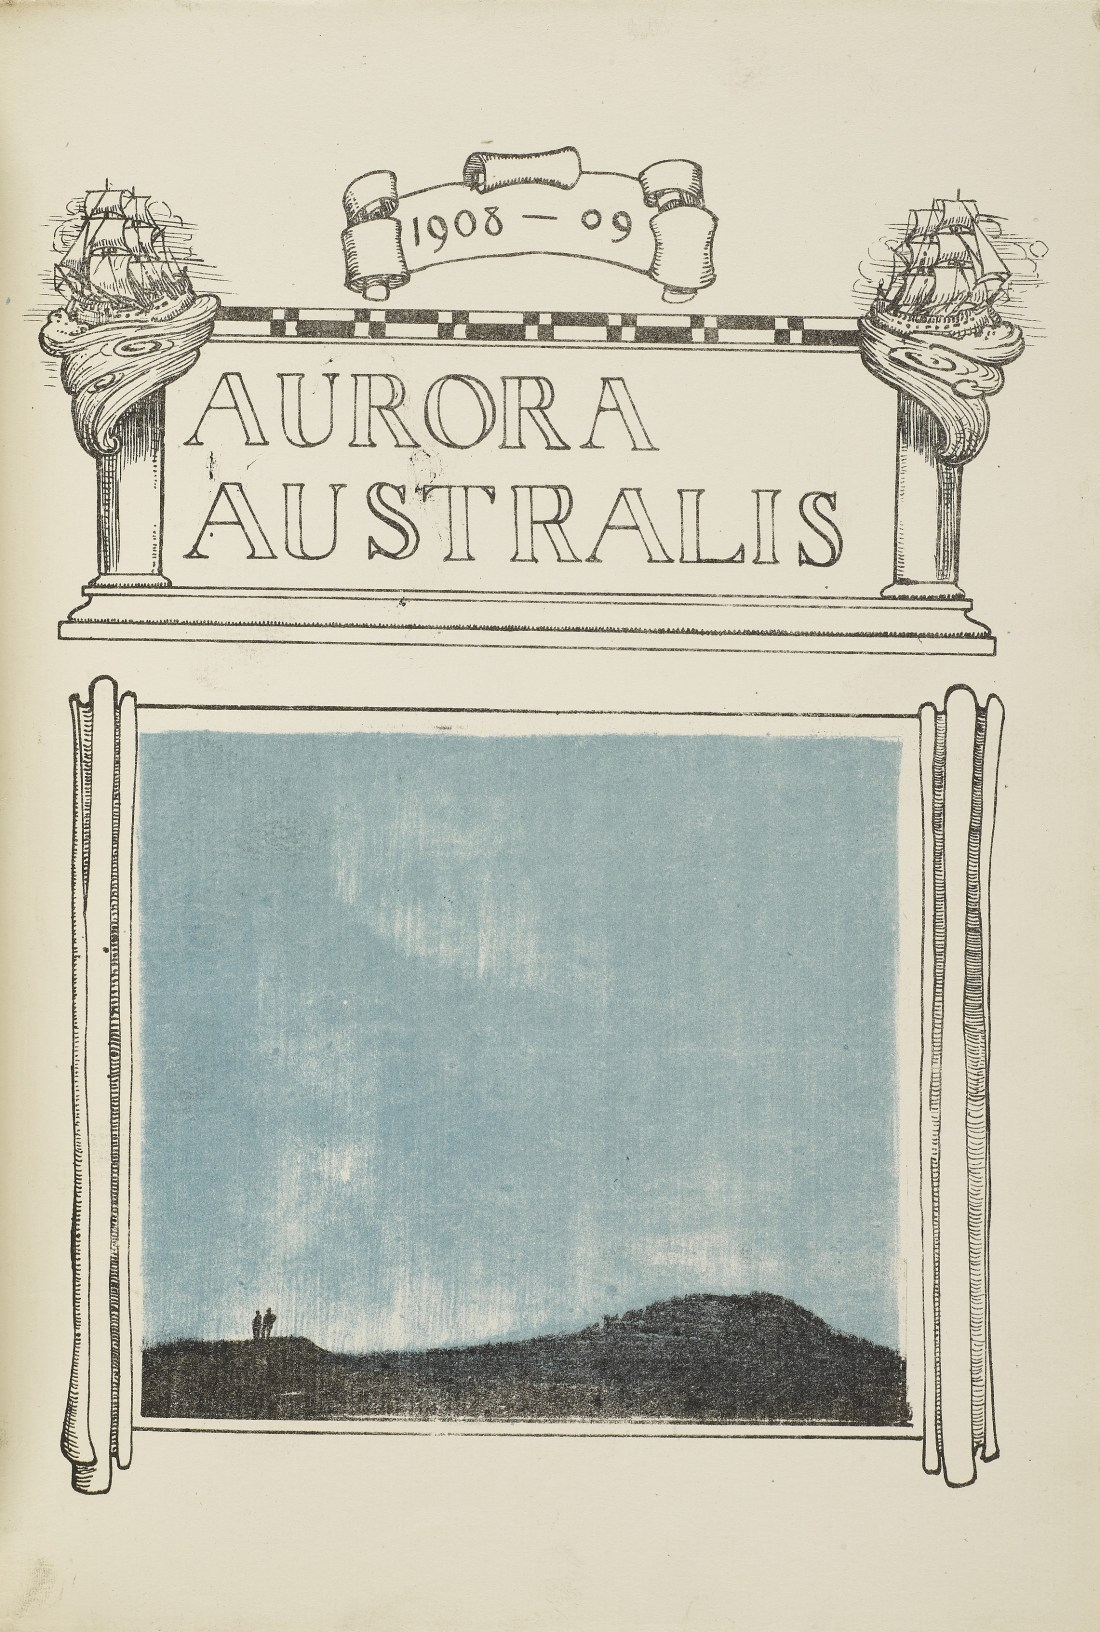 A copy of Aurora Australis, created by members of the 1908-1909 British Antarctic Expedition, led by Ernest Shackleton. It is the first book to be written and produced on the continent of Antarctica.